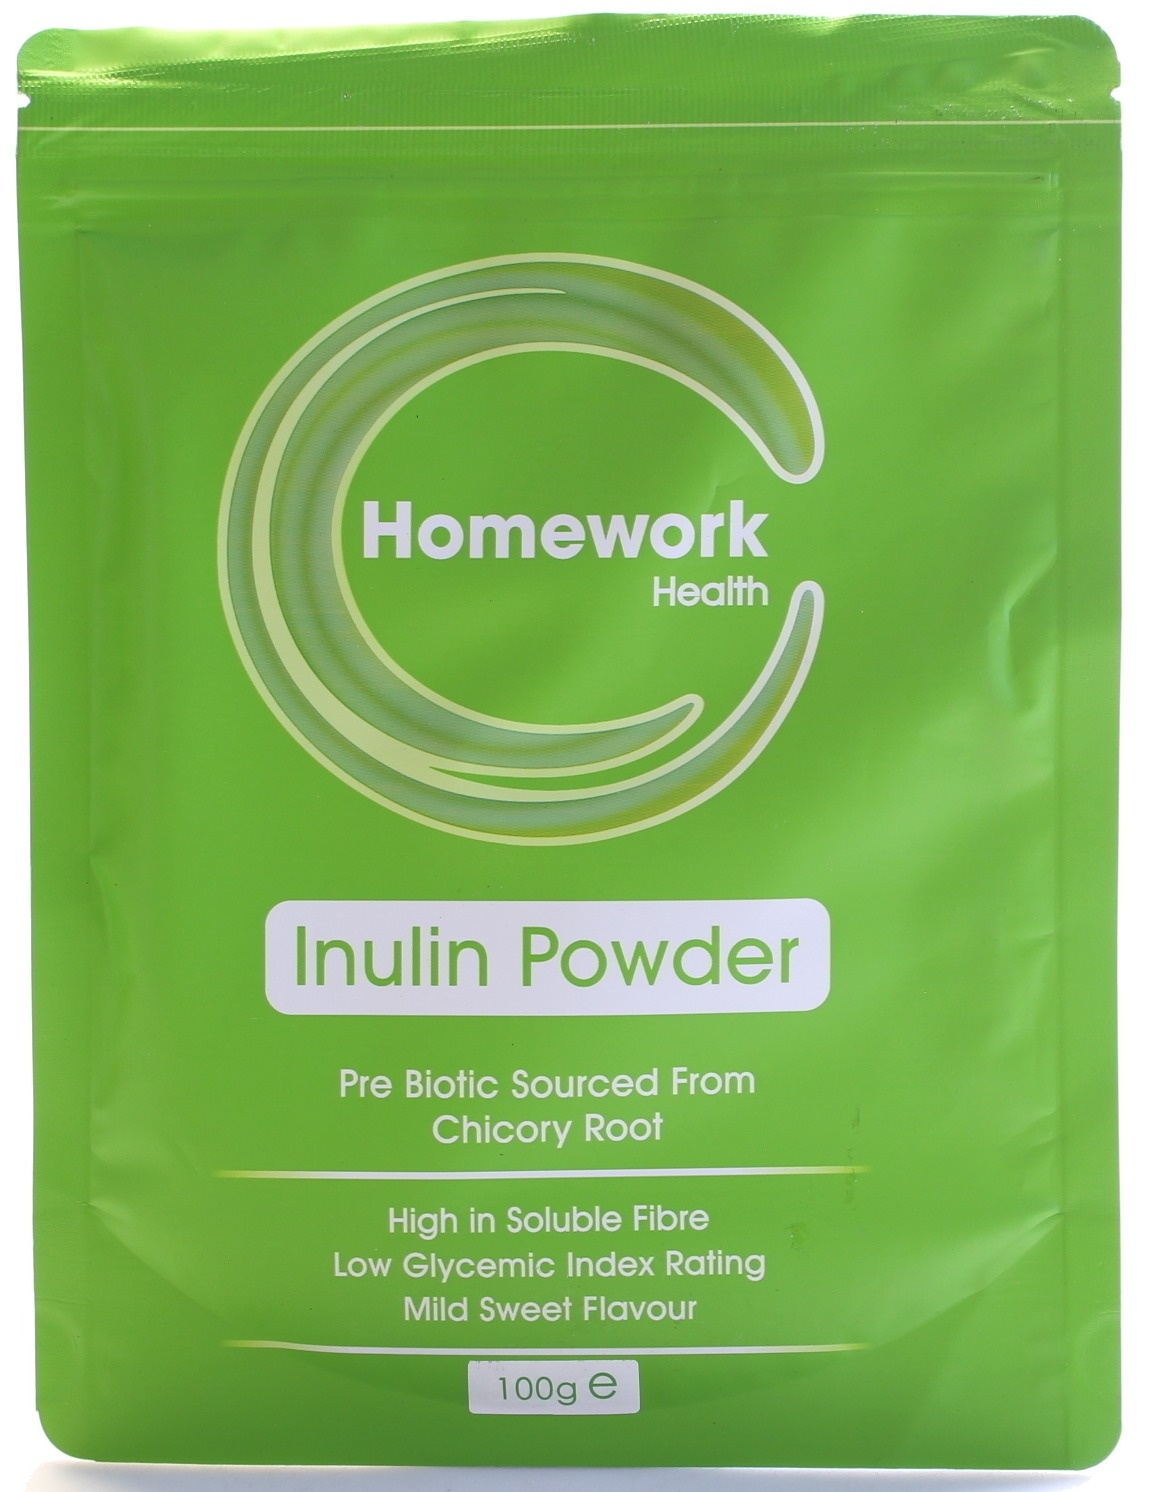 homework health inulin